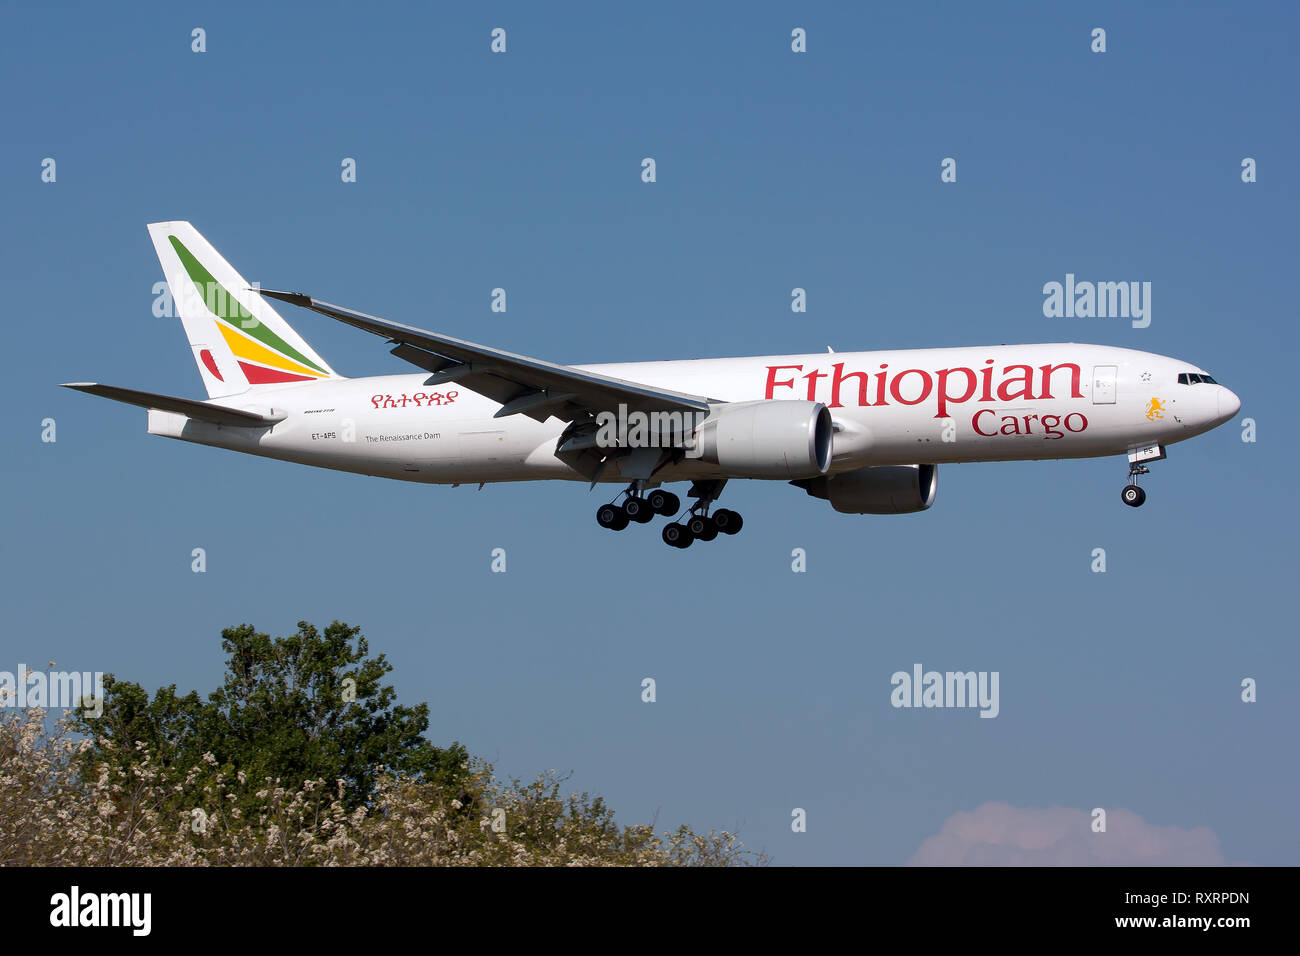 Rome, Italy. 21st Apr, 2014. Ethiopian Cargo Boeing 777 freighter seen landing at Rome Fiumicino airport. Credit: Fabrizio Gandolfo/SOPA Images/ZUMA Wire/Alamy Live News - Stock Image